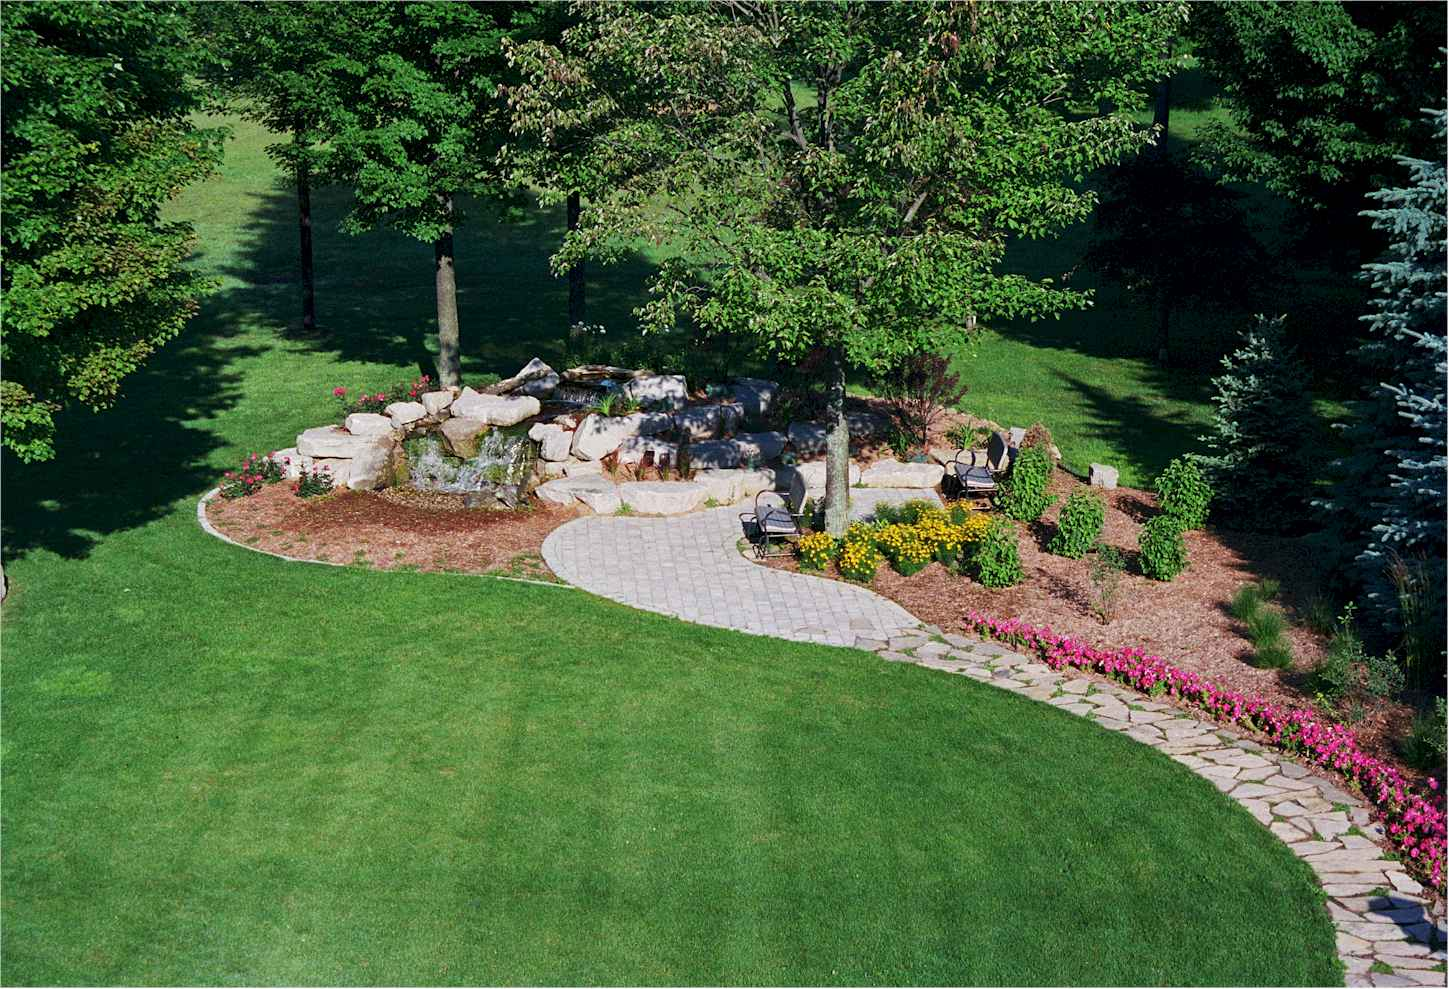 5 landscaping ideas to wow the neighbors for Home landscaping ideas